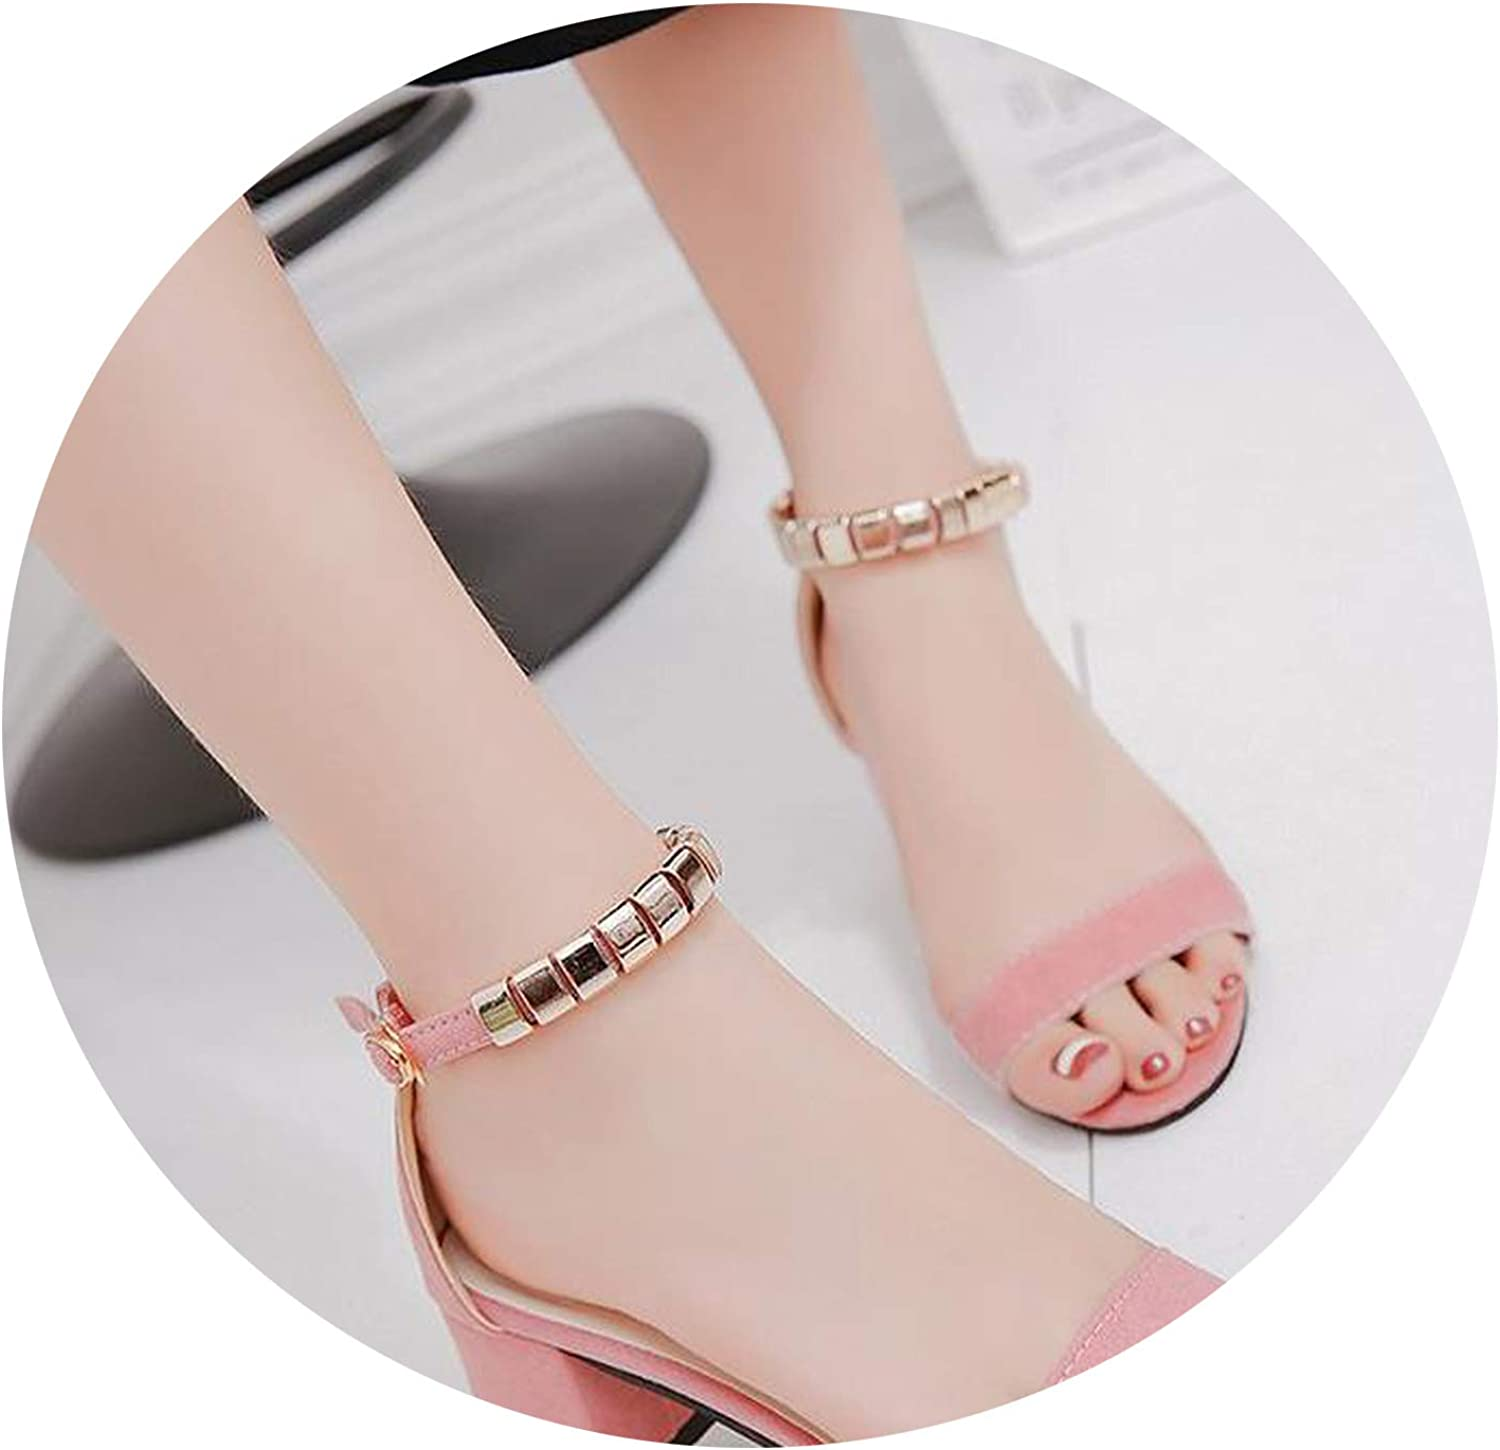 Buckle with high Heels Thick with Women's shoes Open Toe Hollow Ladies Sandals